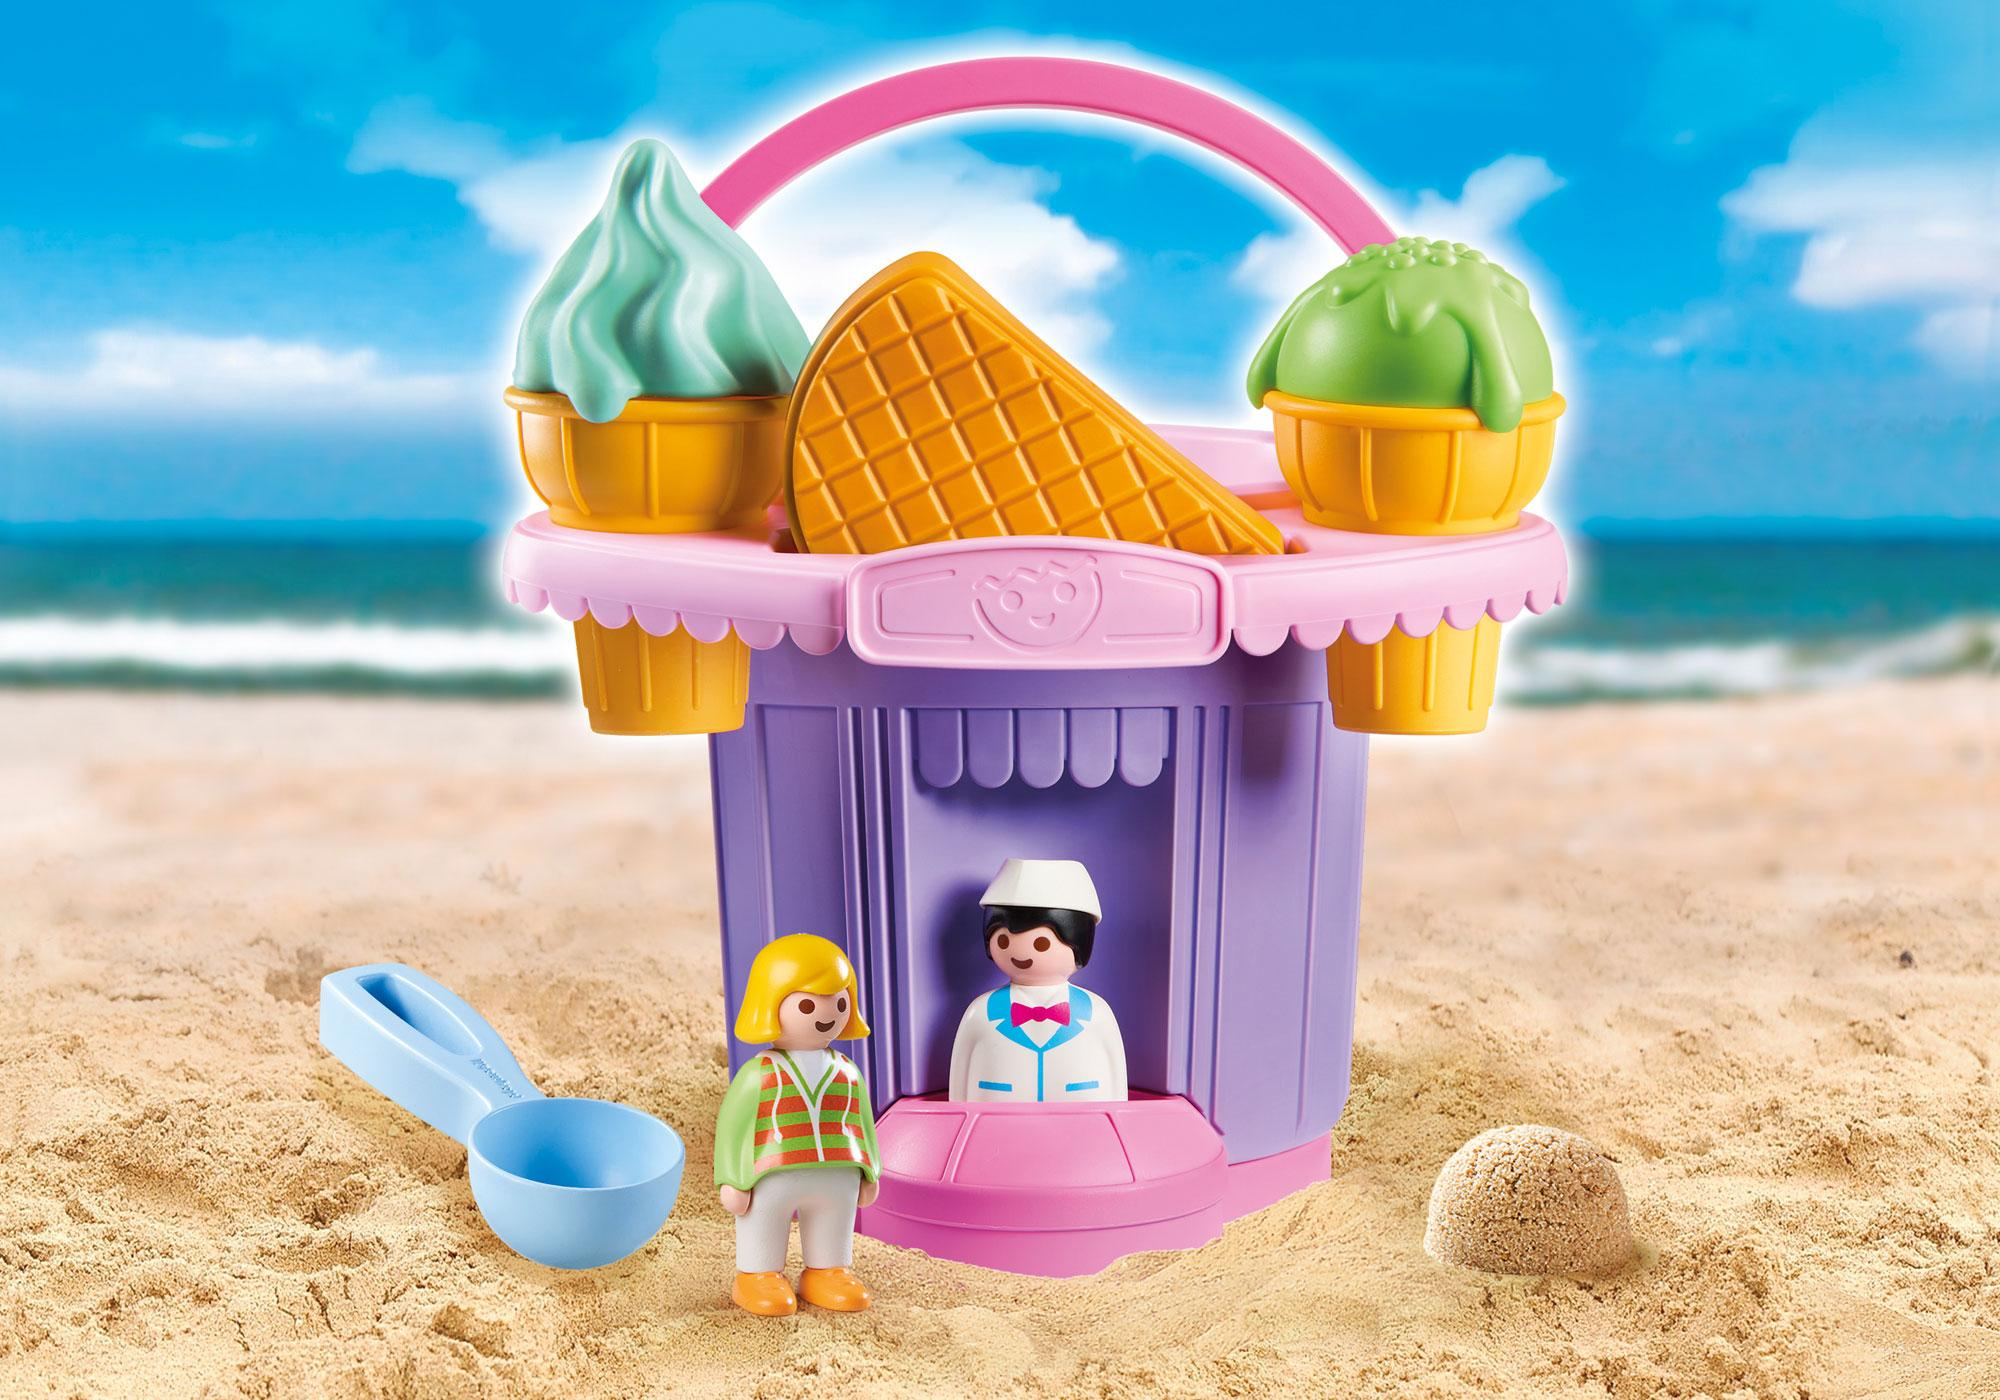 http://media.playmobil.com/i/playmobil/9406_product_detail/Ice Cream Shop Sand Bucket